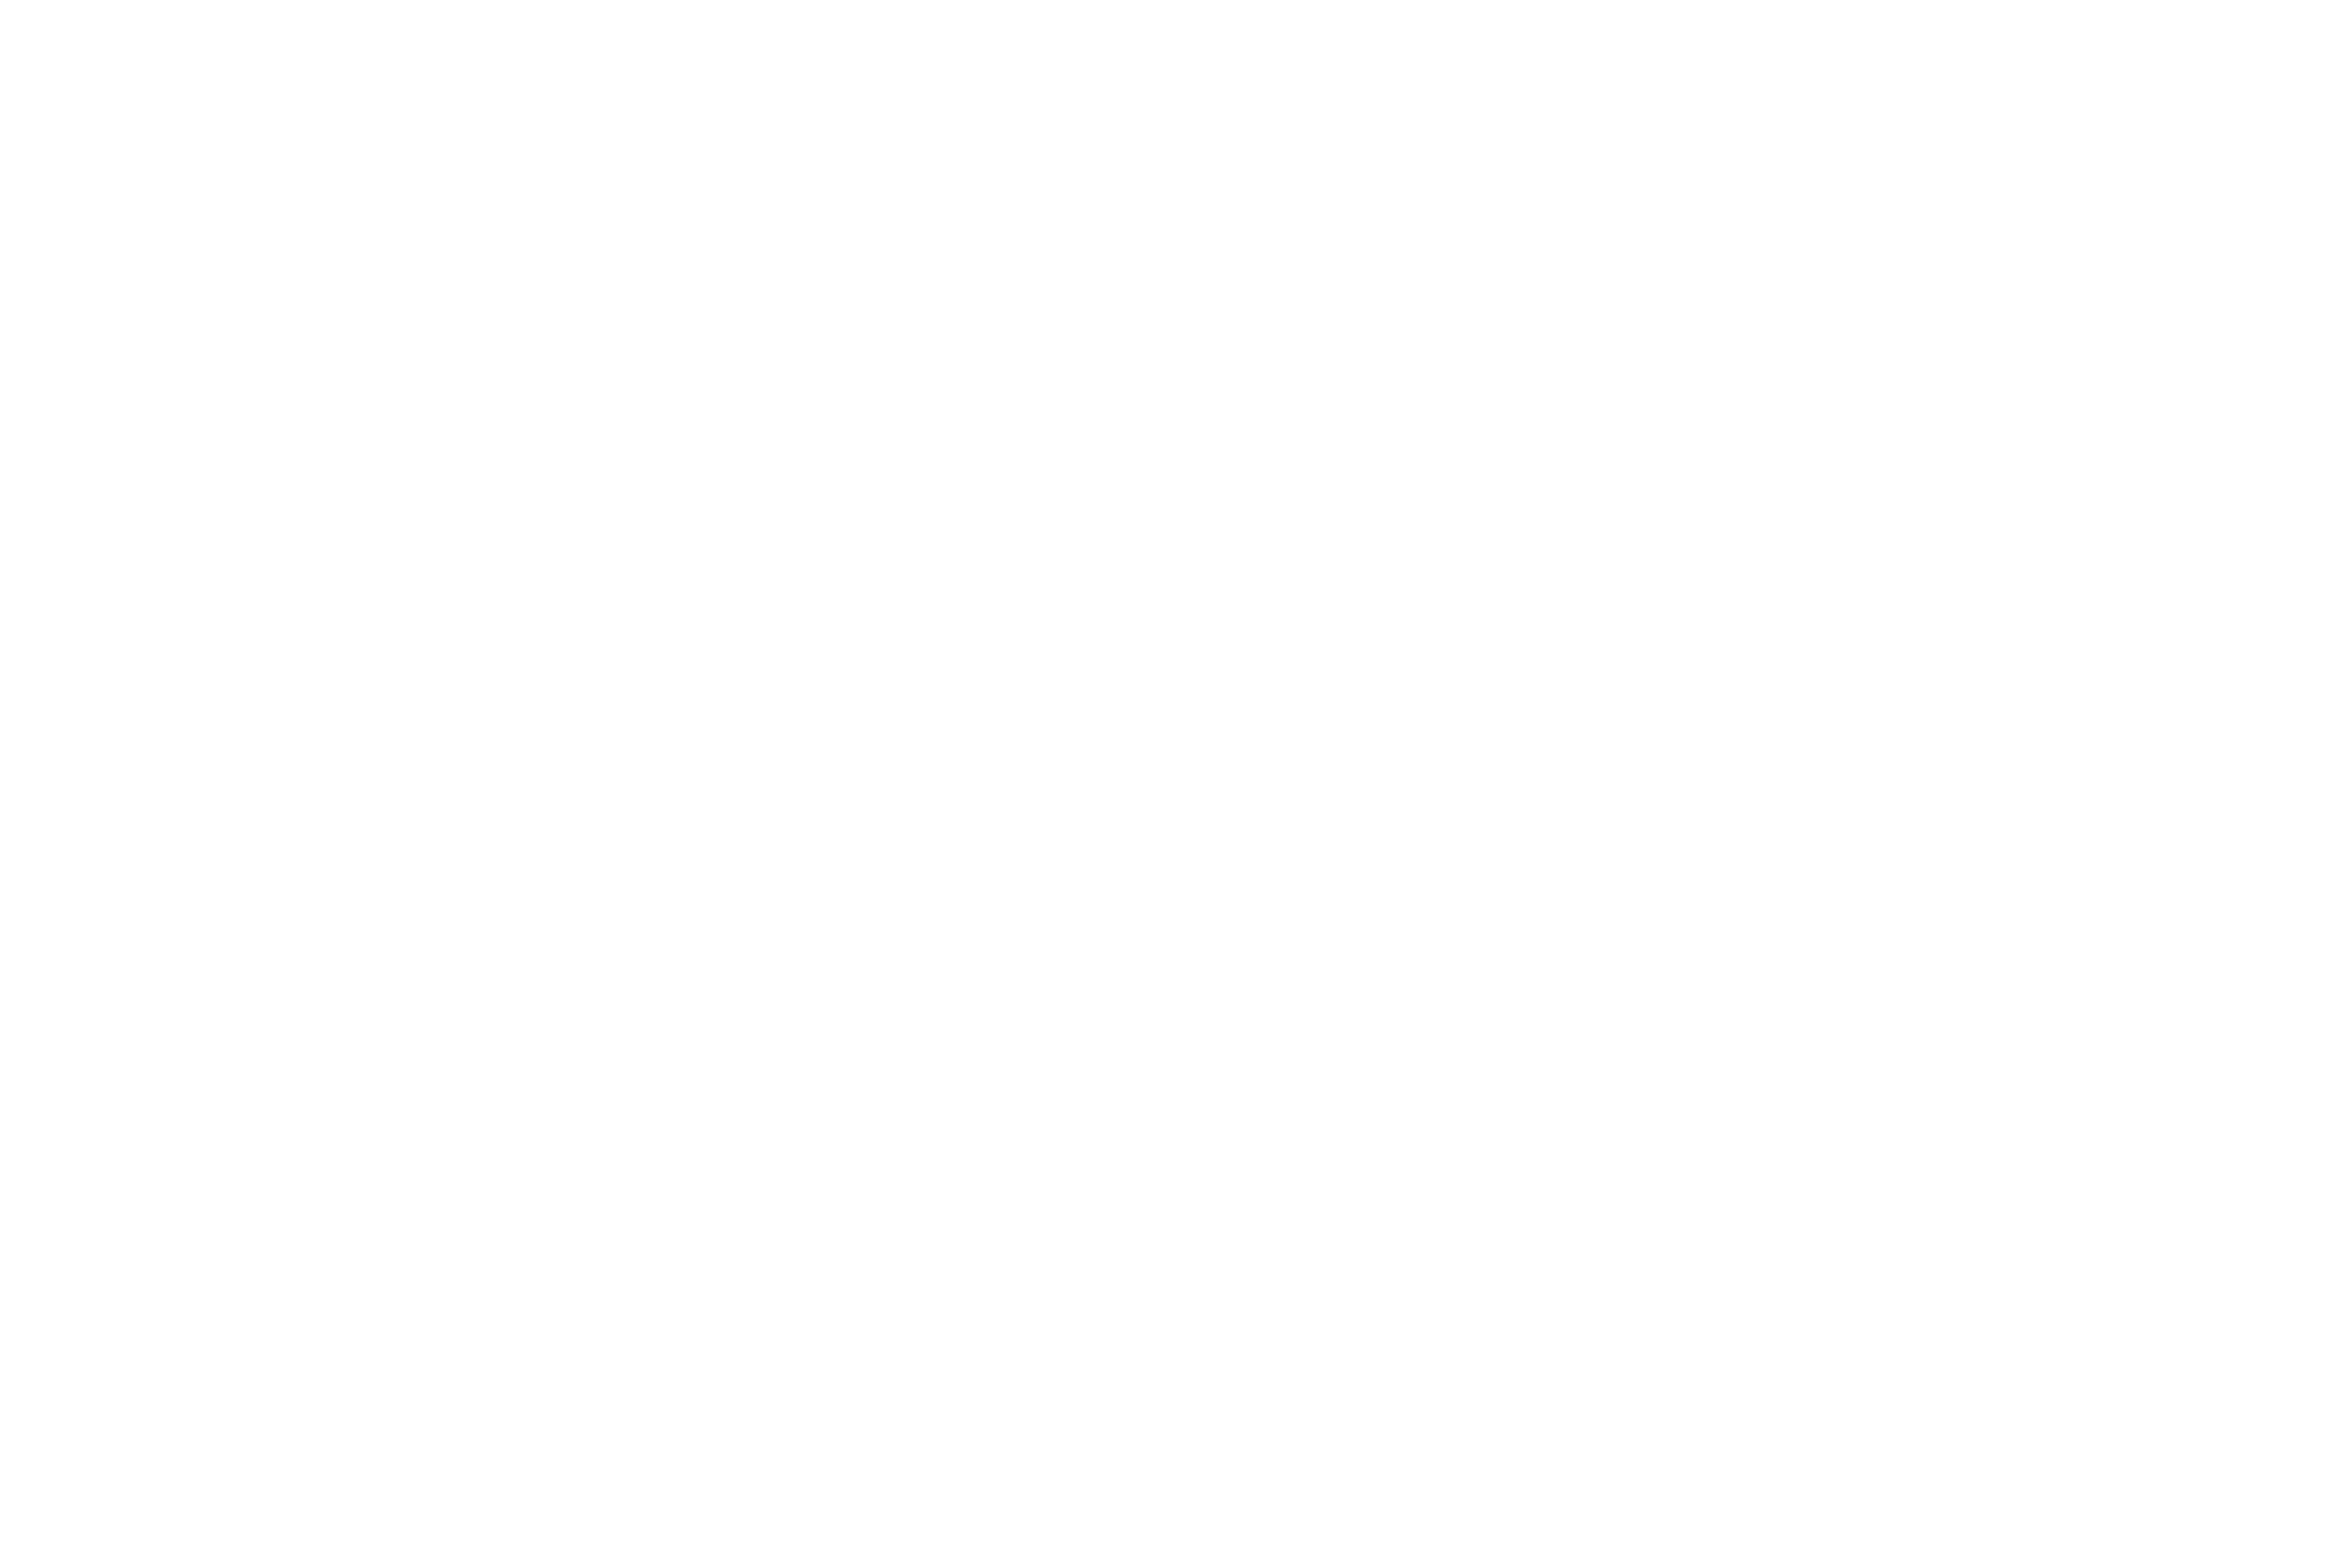 YIPMAGE MOMENTS